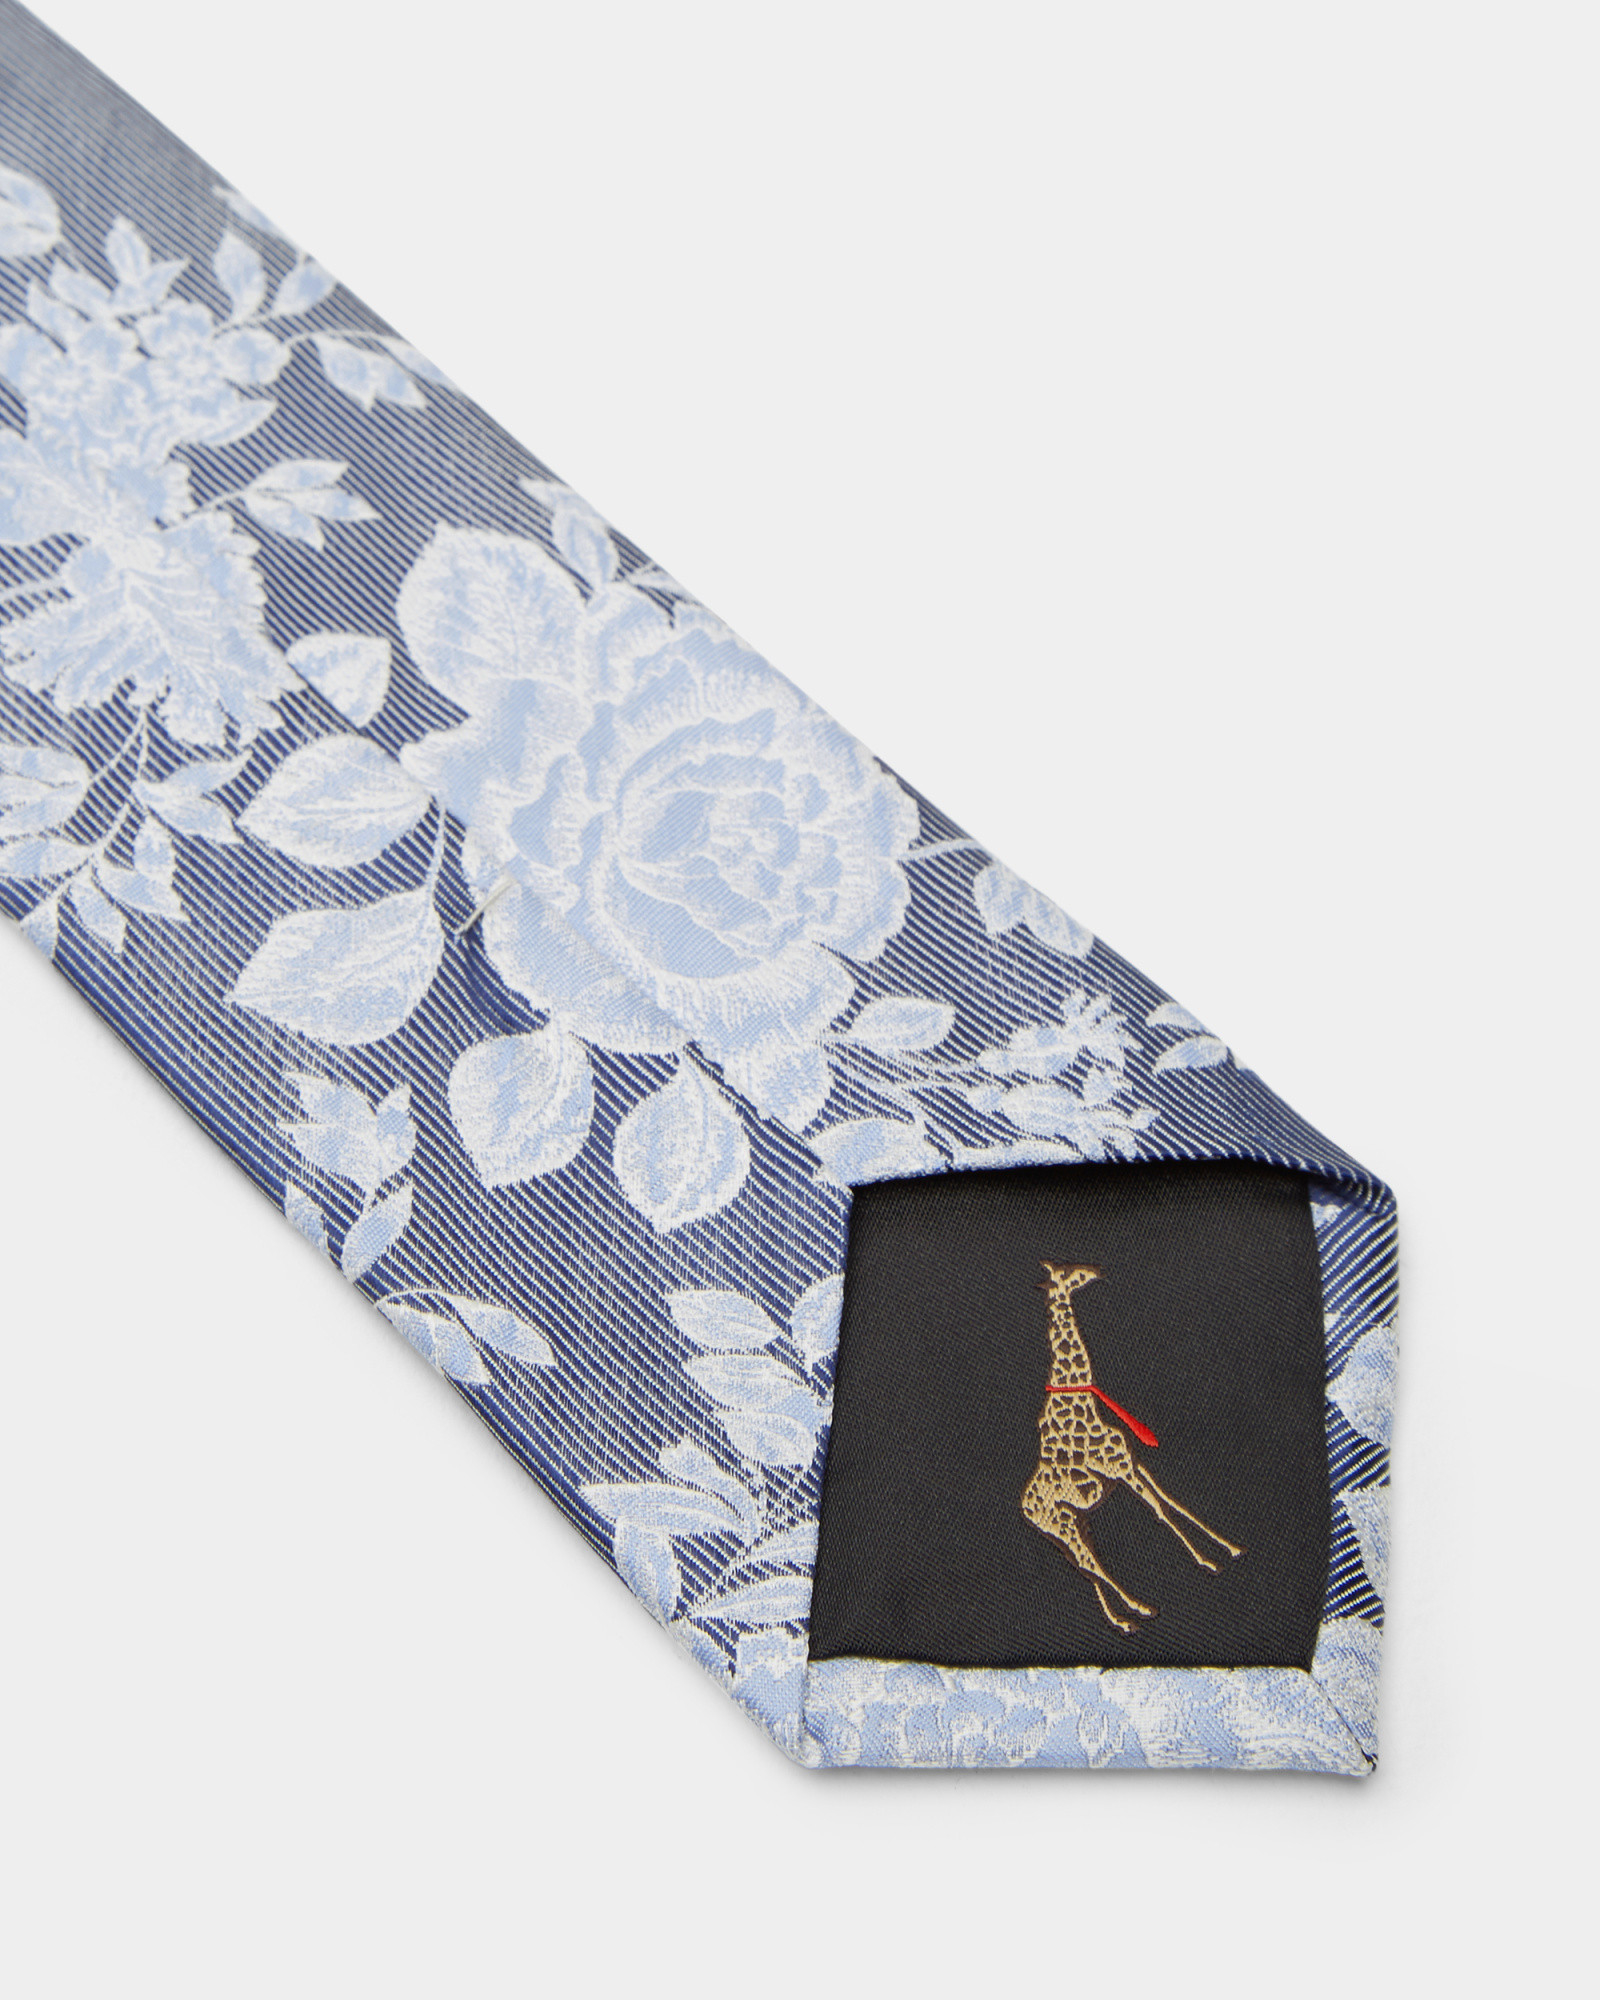 033c5fbf3e4b Lyst ted baker floral jacquard silk tie in blue for men jpg 1600x2000 Ted  baker ties